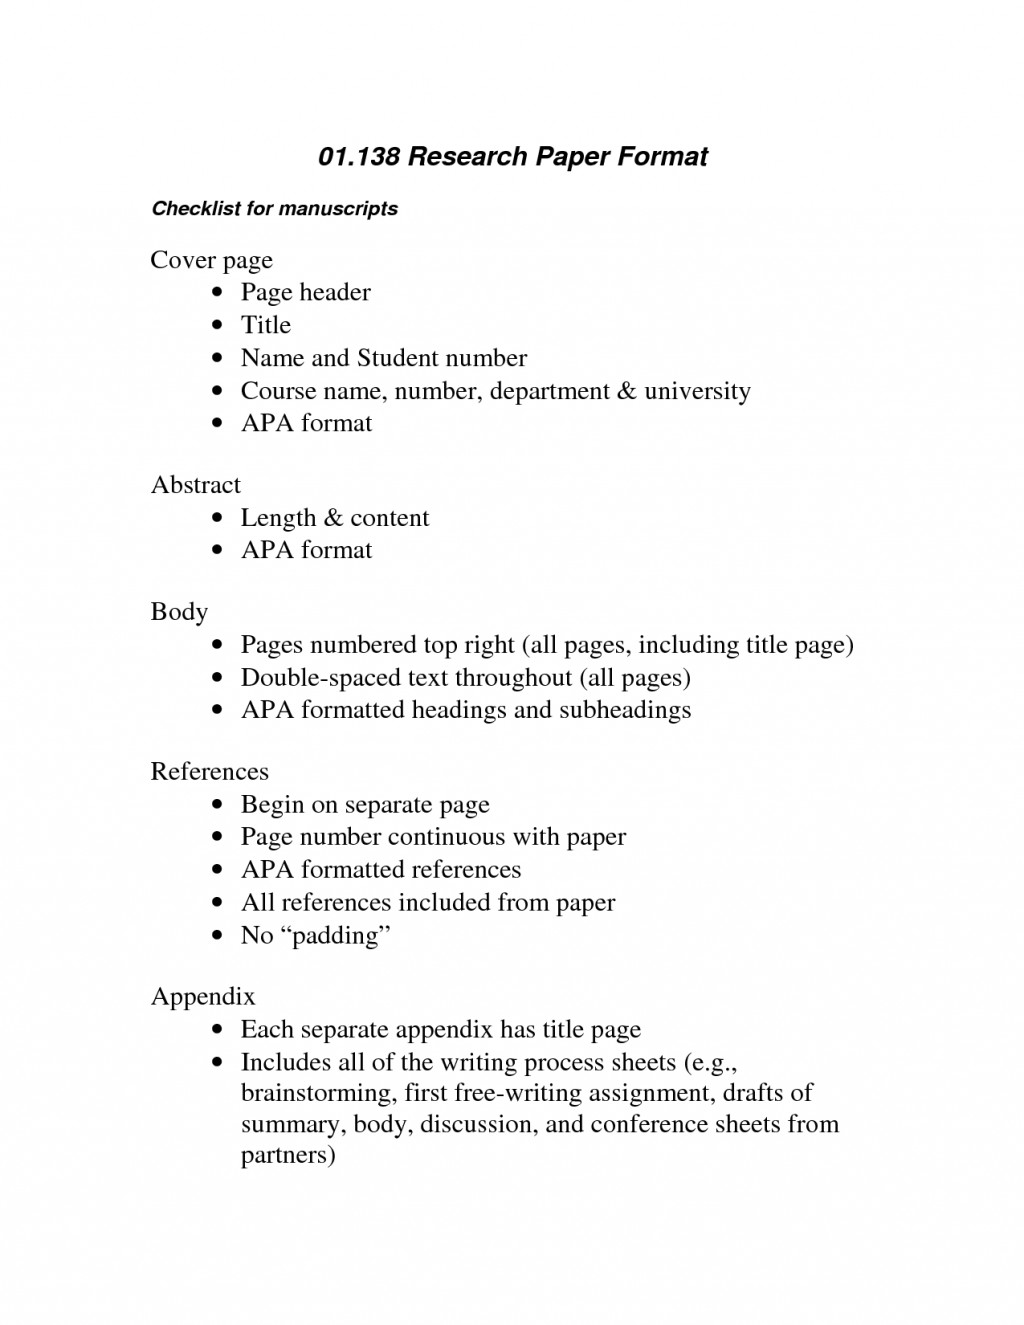 010 Check Essay Archaicawful My For Punctuation Errors Free On Turnitin Grammar Large